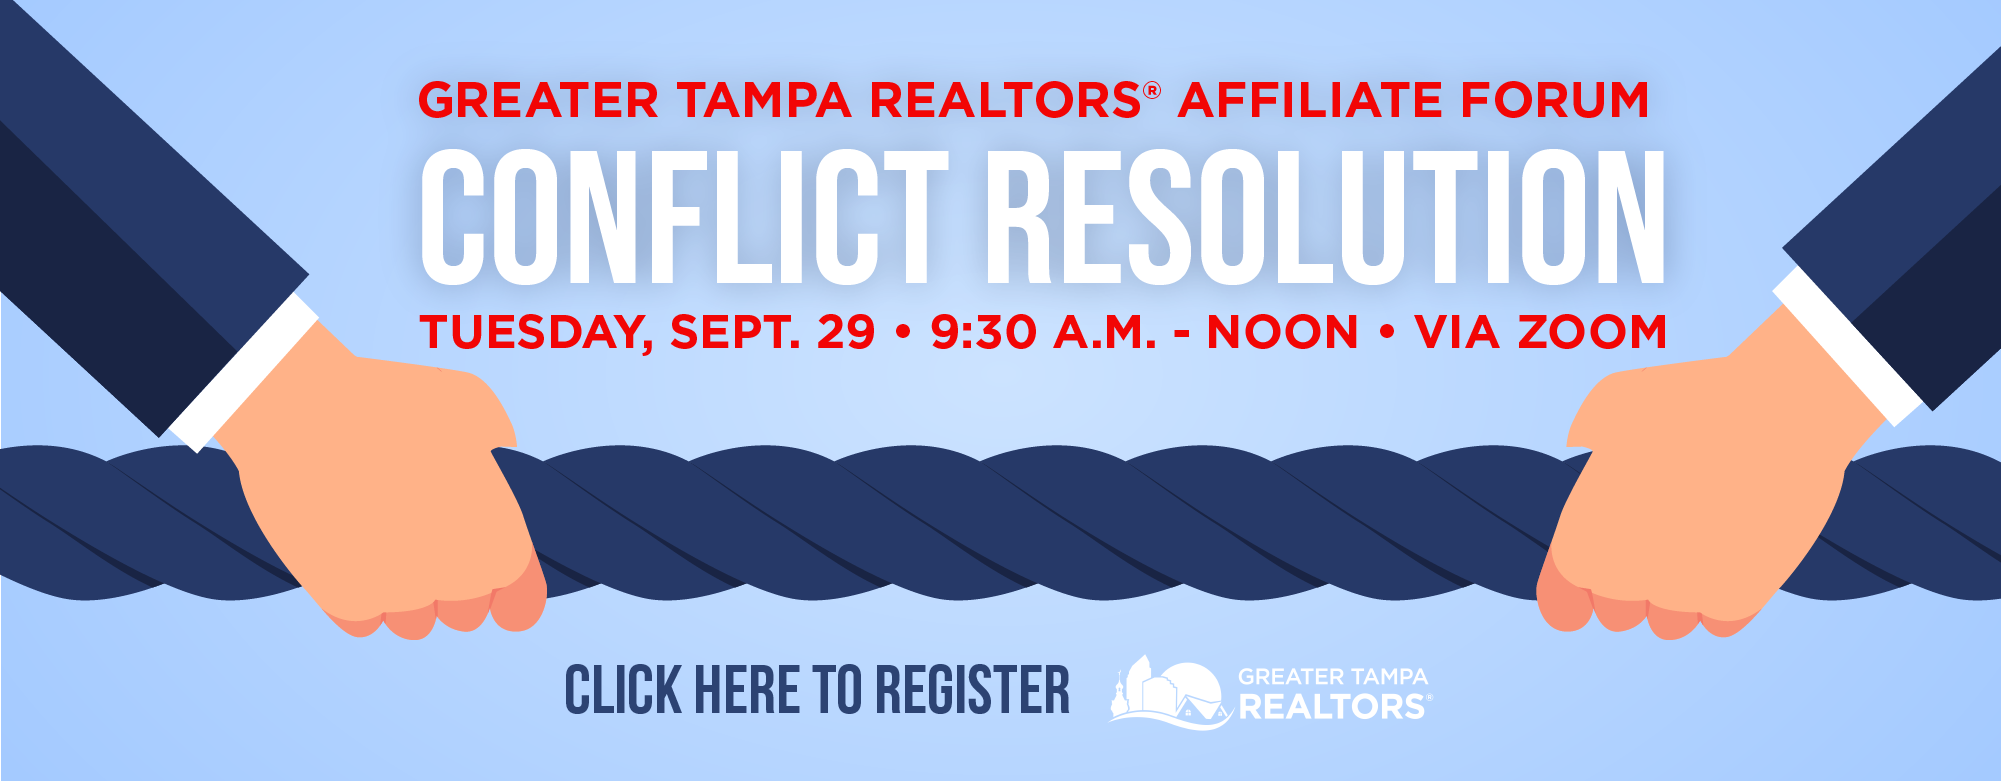 Greater Tampa Realtors Affiliate Forum Conflict Resolution, Tuesday, Sept. 29 from 9:30 a.m. to Noon via Zoom. Click the image to register.